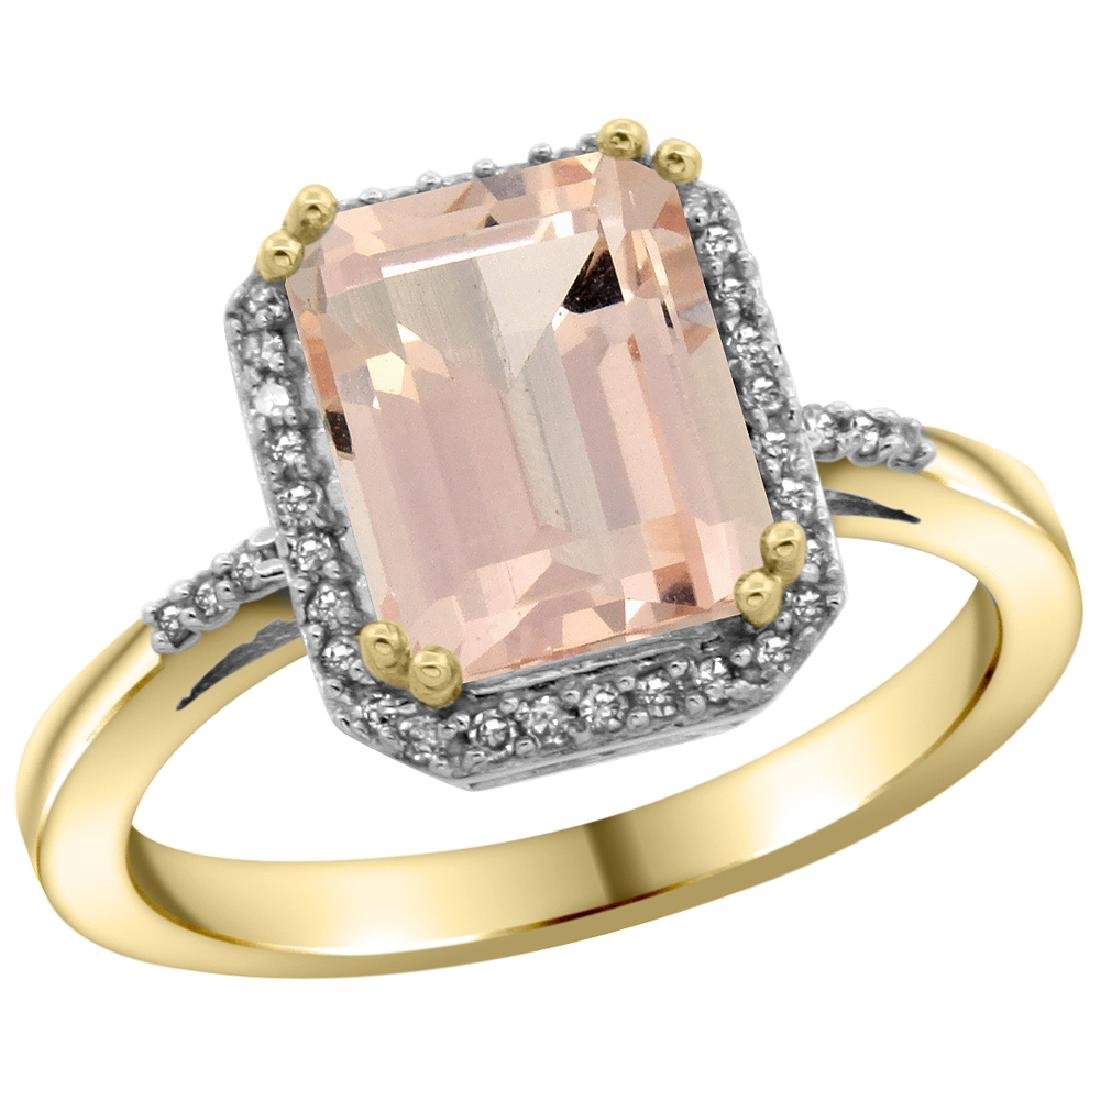 Natural 2.63 ctw Morganite & Diamond Engagement Ring